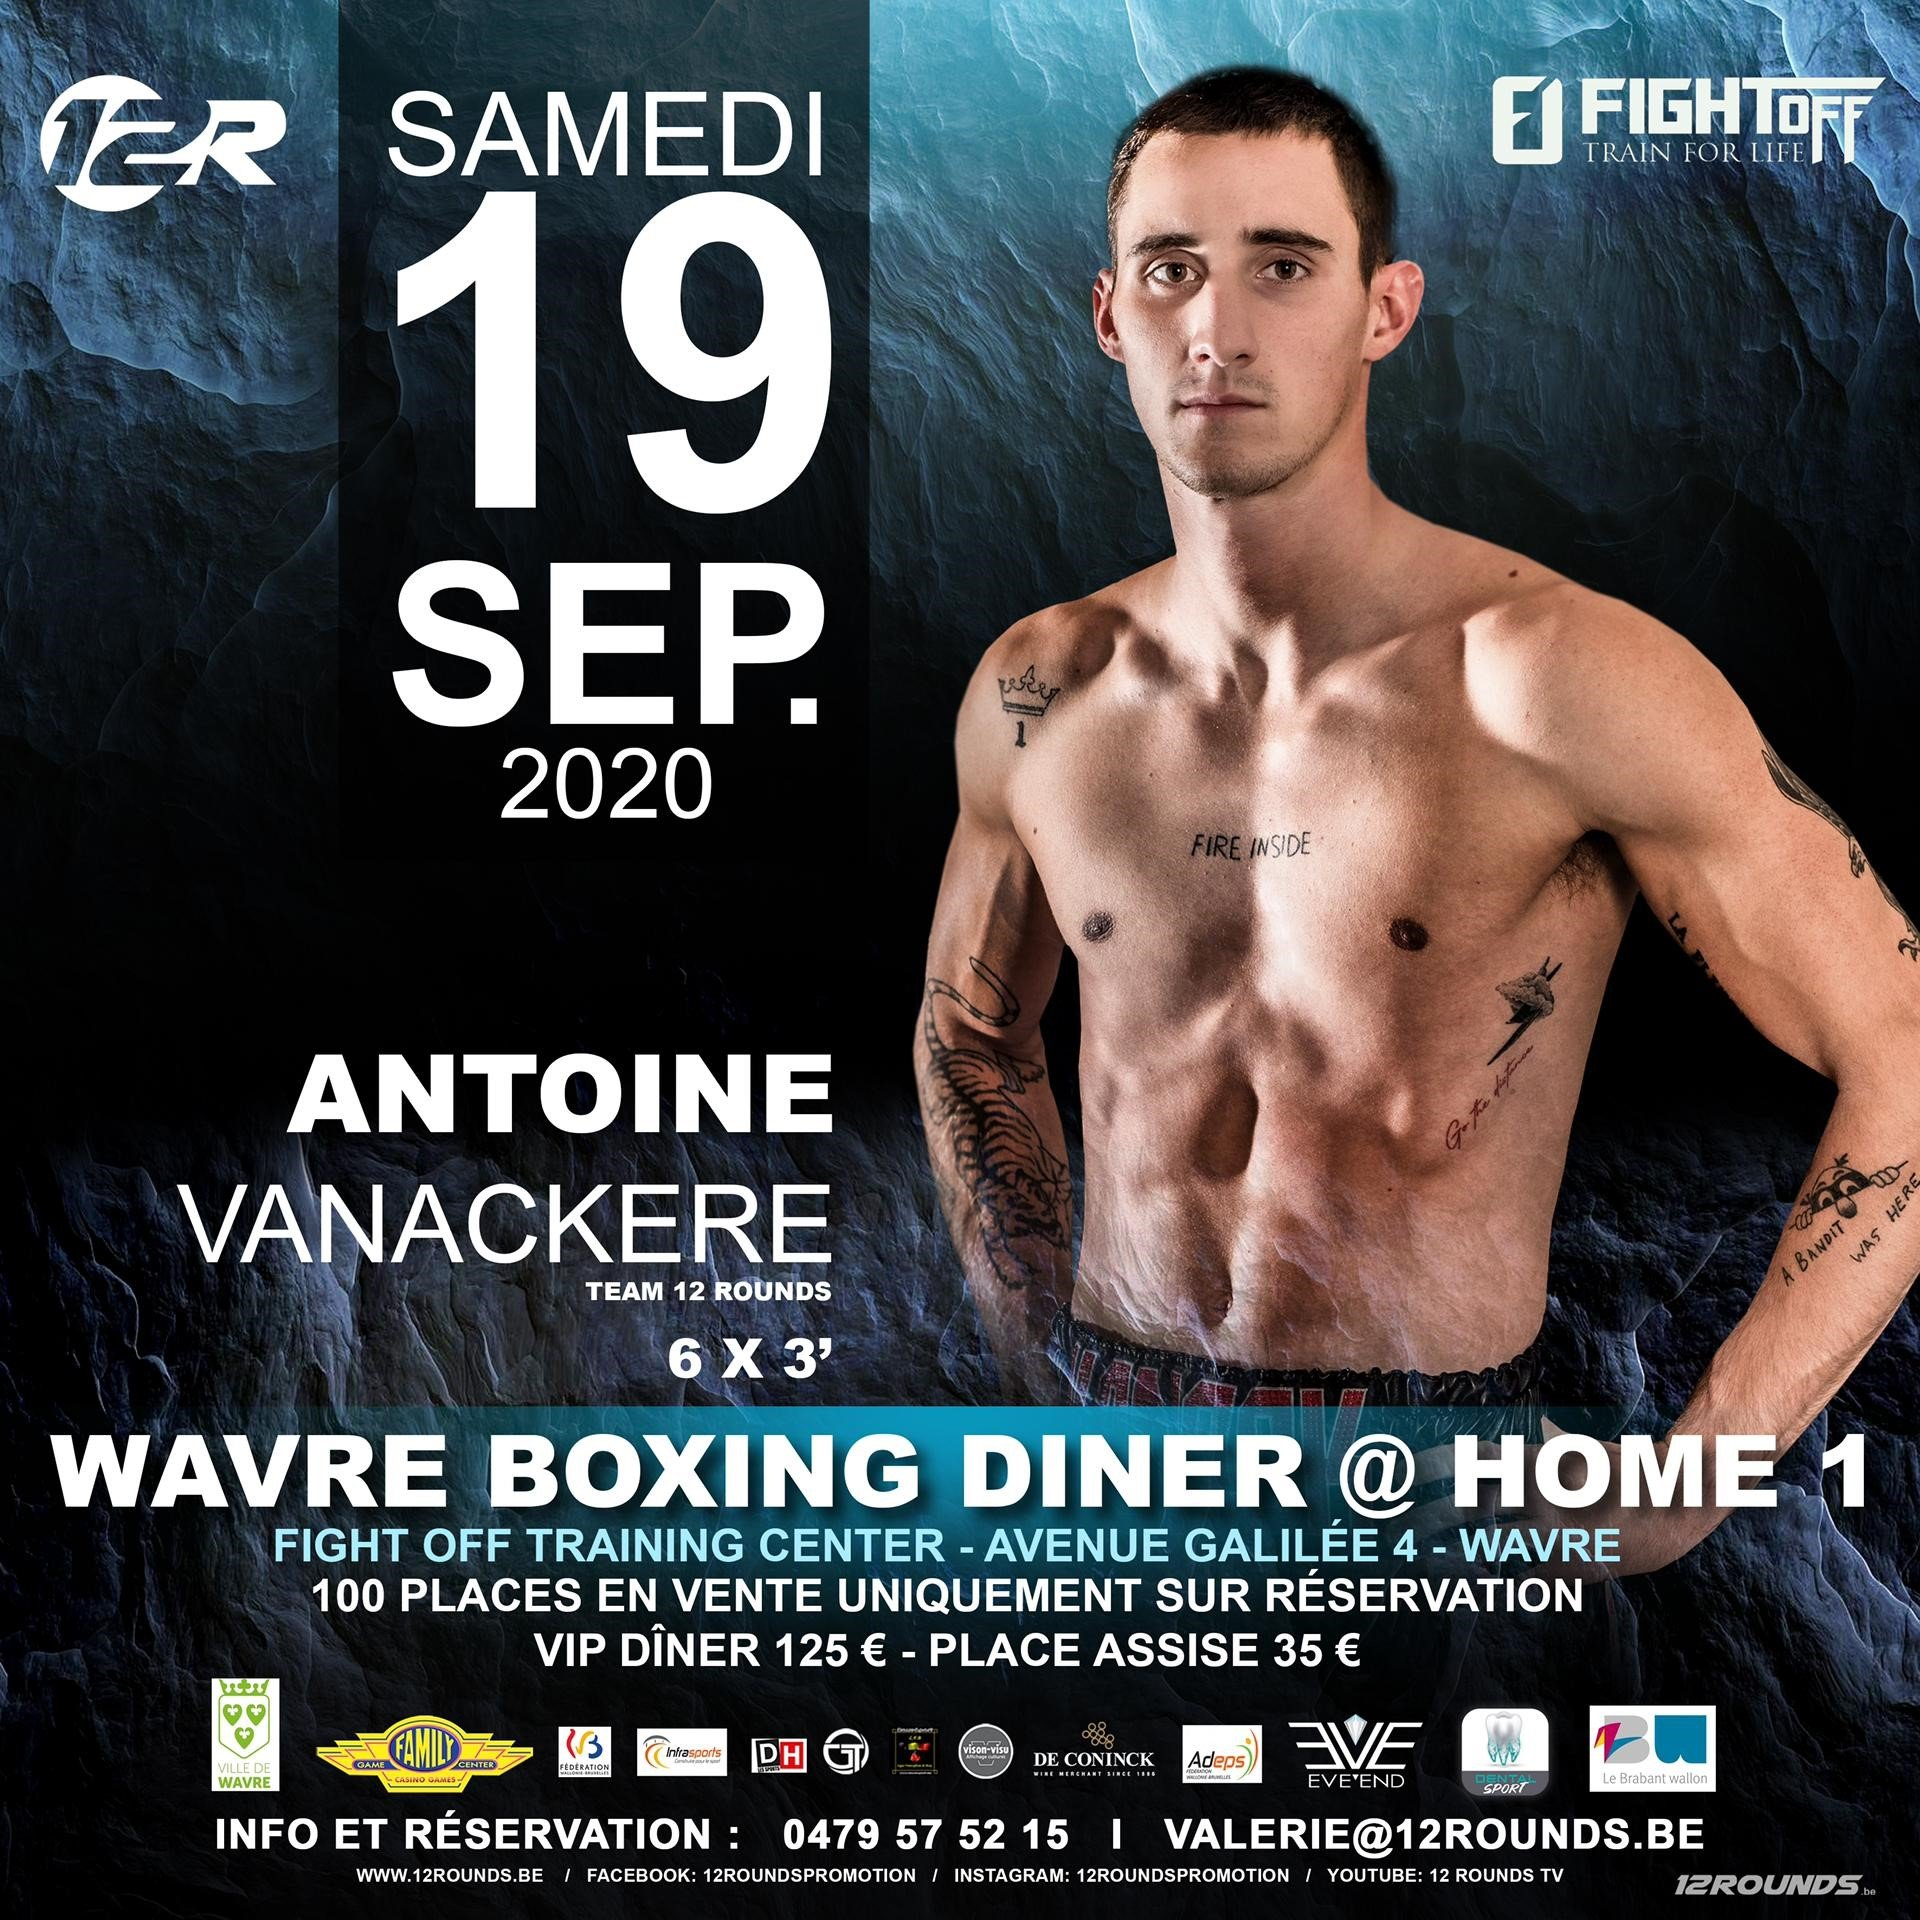 Antoine Vanackère - Belgium's first boxing show after the lockdown will be hosted today, September 19th with a live stream available on Facebook. 'After COVID' boxing show will have two professional fights and 8 amateur fights in Wavre. The event will be promoted by Belgium's biggest promoter 12 Rounds.